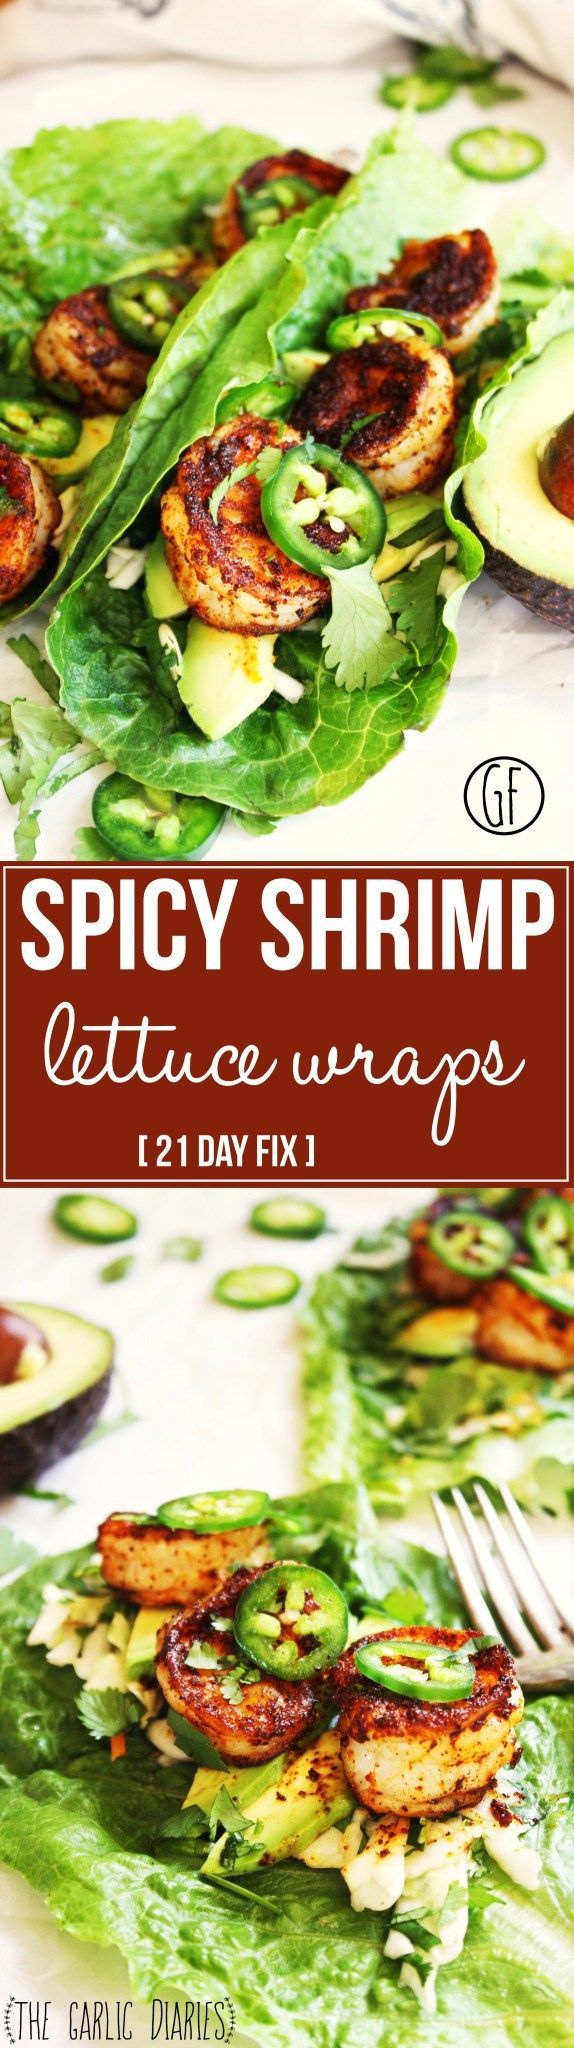 Shrimp and Avocado Lettuce Wraps [21 Day Fix] - A crispy leaf of romaine lettuce piled high with honey lime slaw, fresh avocado, blackened shrimp, and jalapeños - a flawless combination of flavors and textures!